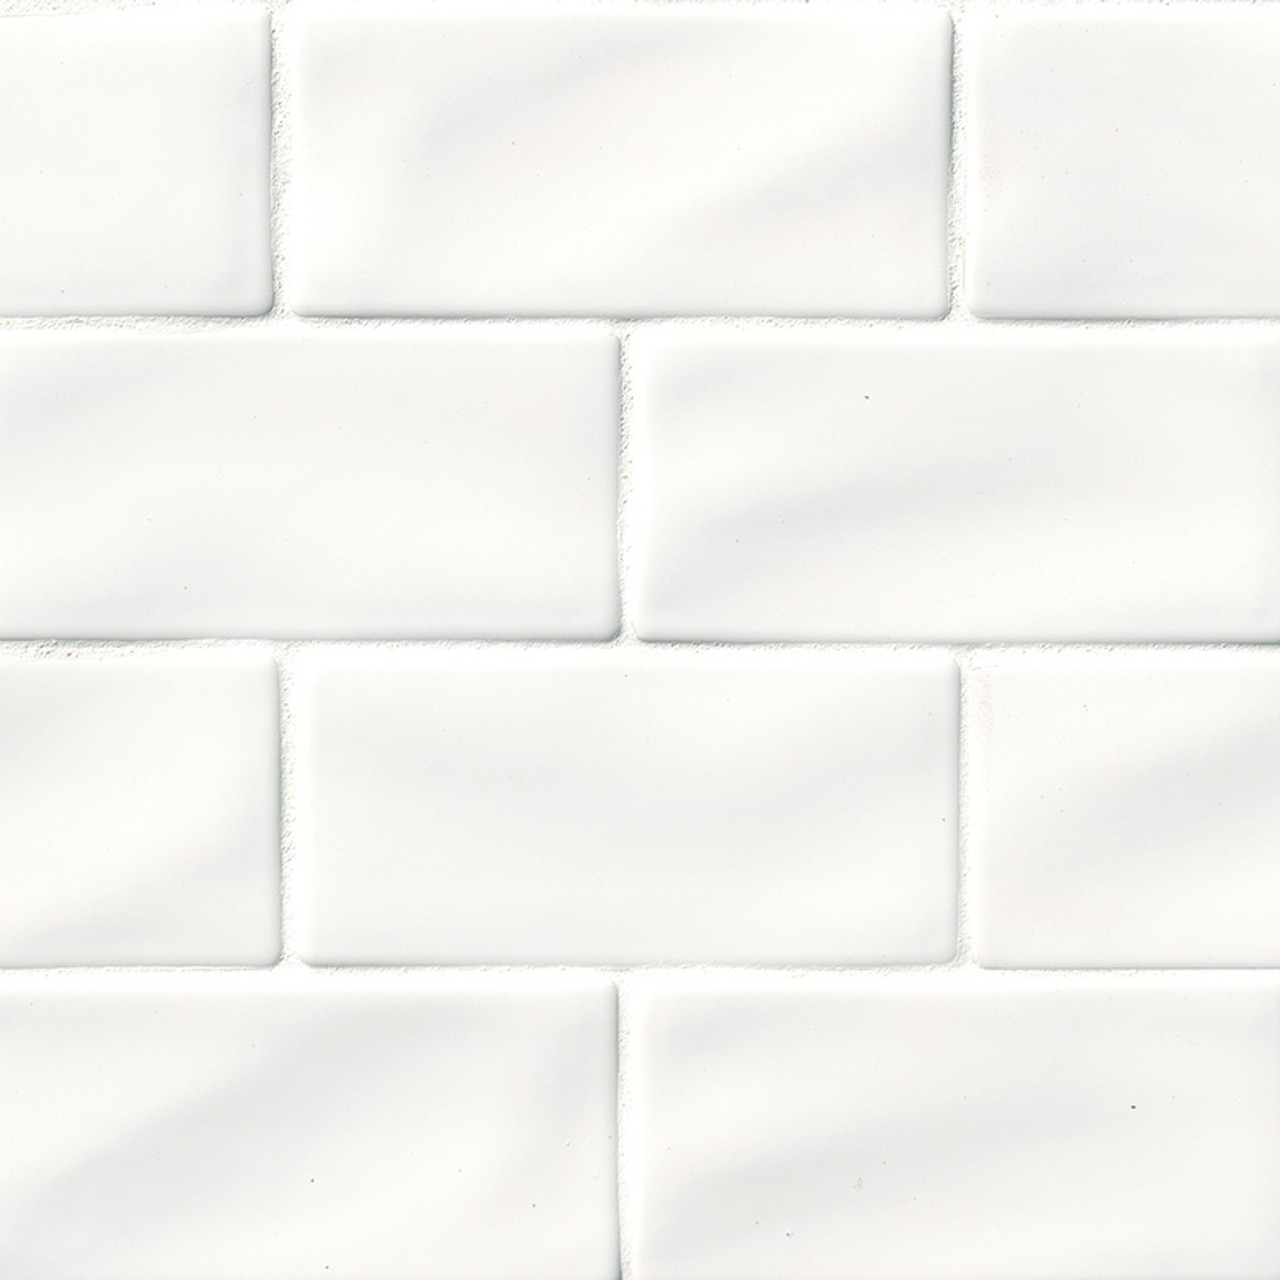 Highland Park Whisper White Subway Tile 3x6 Tiles Direct Store